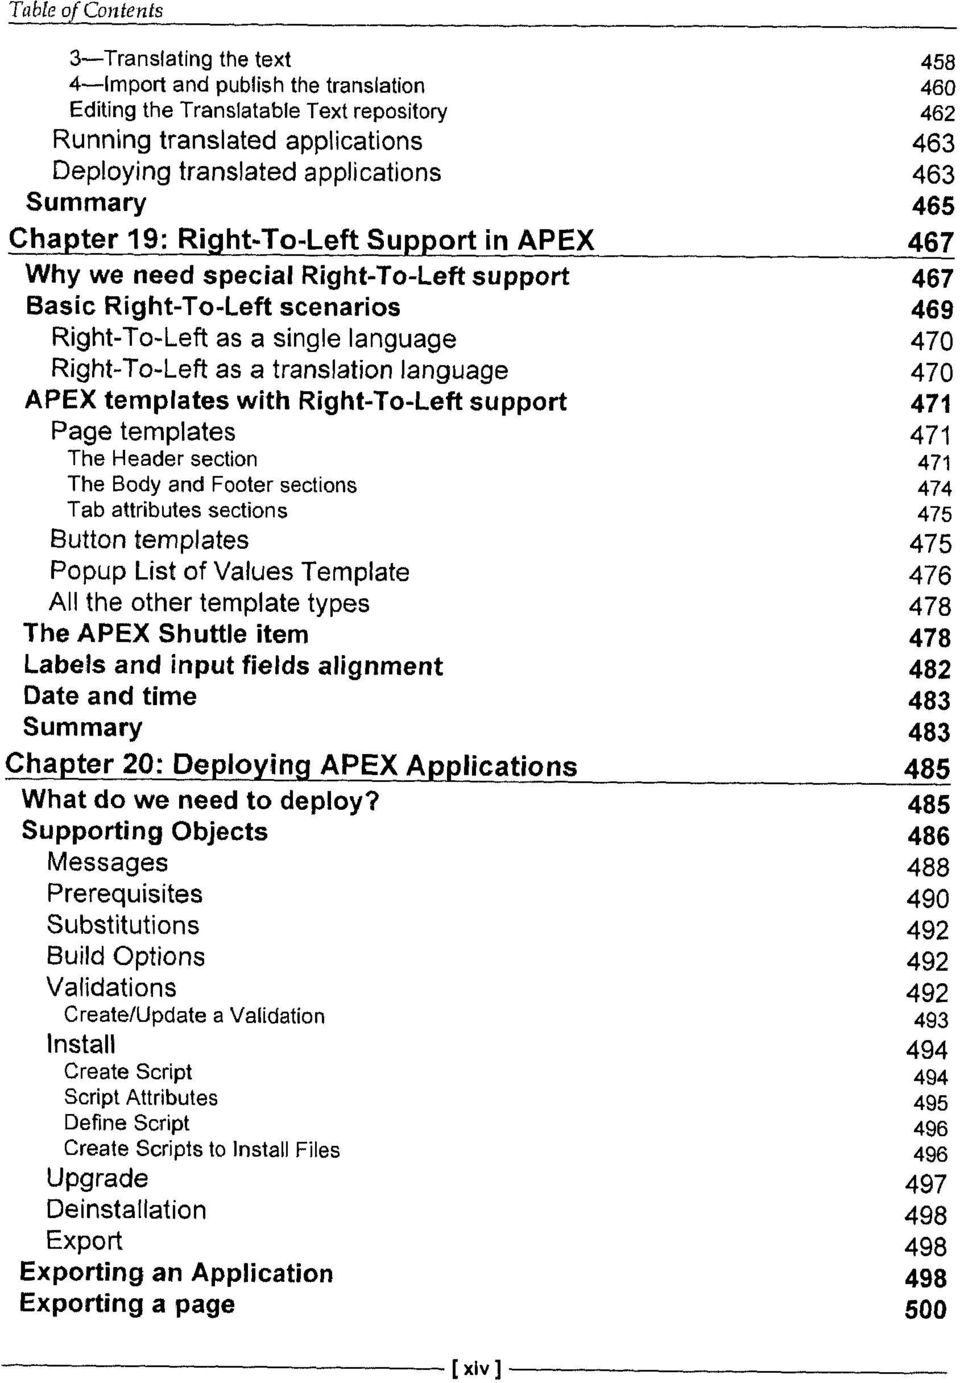 19: Right-To-Left Support in APEX 467 Why we need special Right-To-Left support 467 Basic Right-To-Left scenarios 469 Right-To-Left as a single language 470 Right-To-Left as a translation language